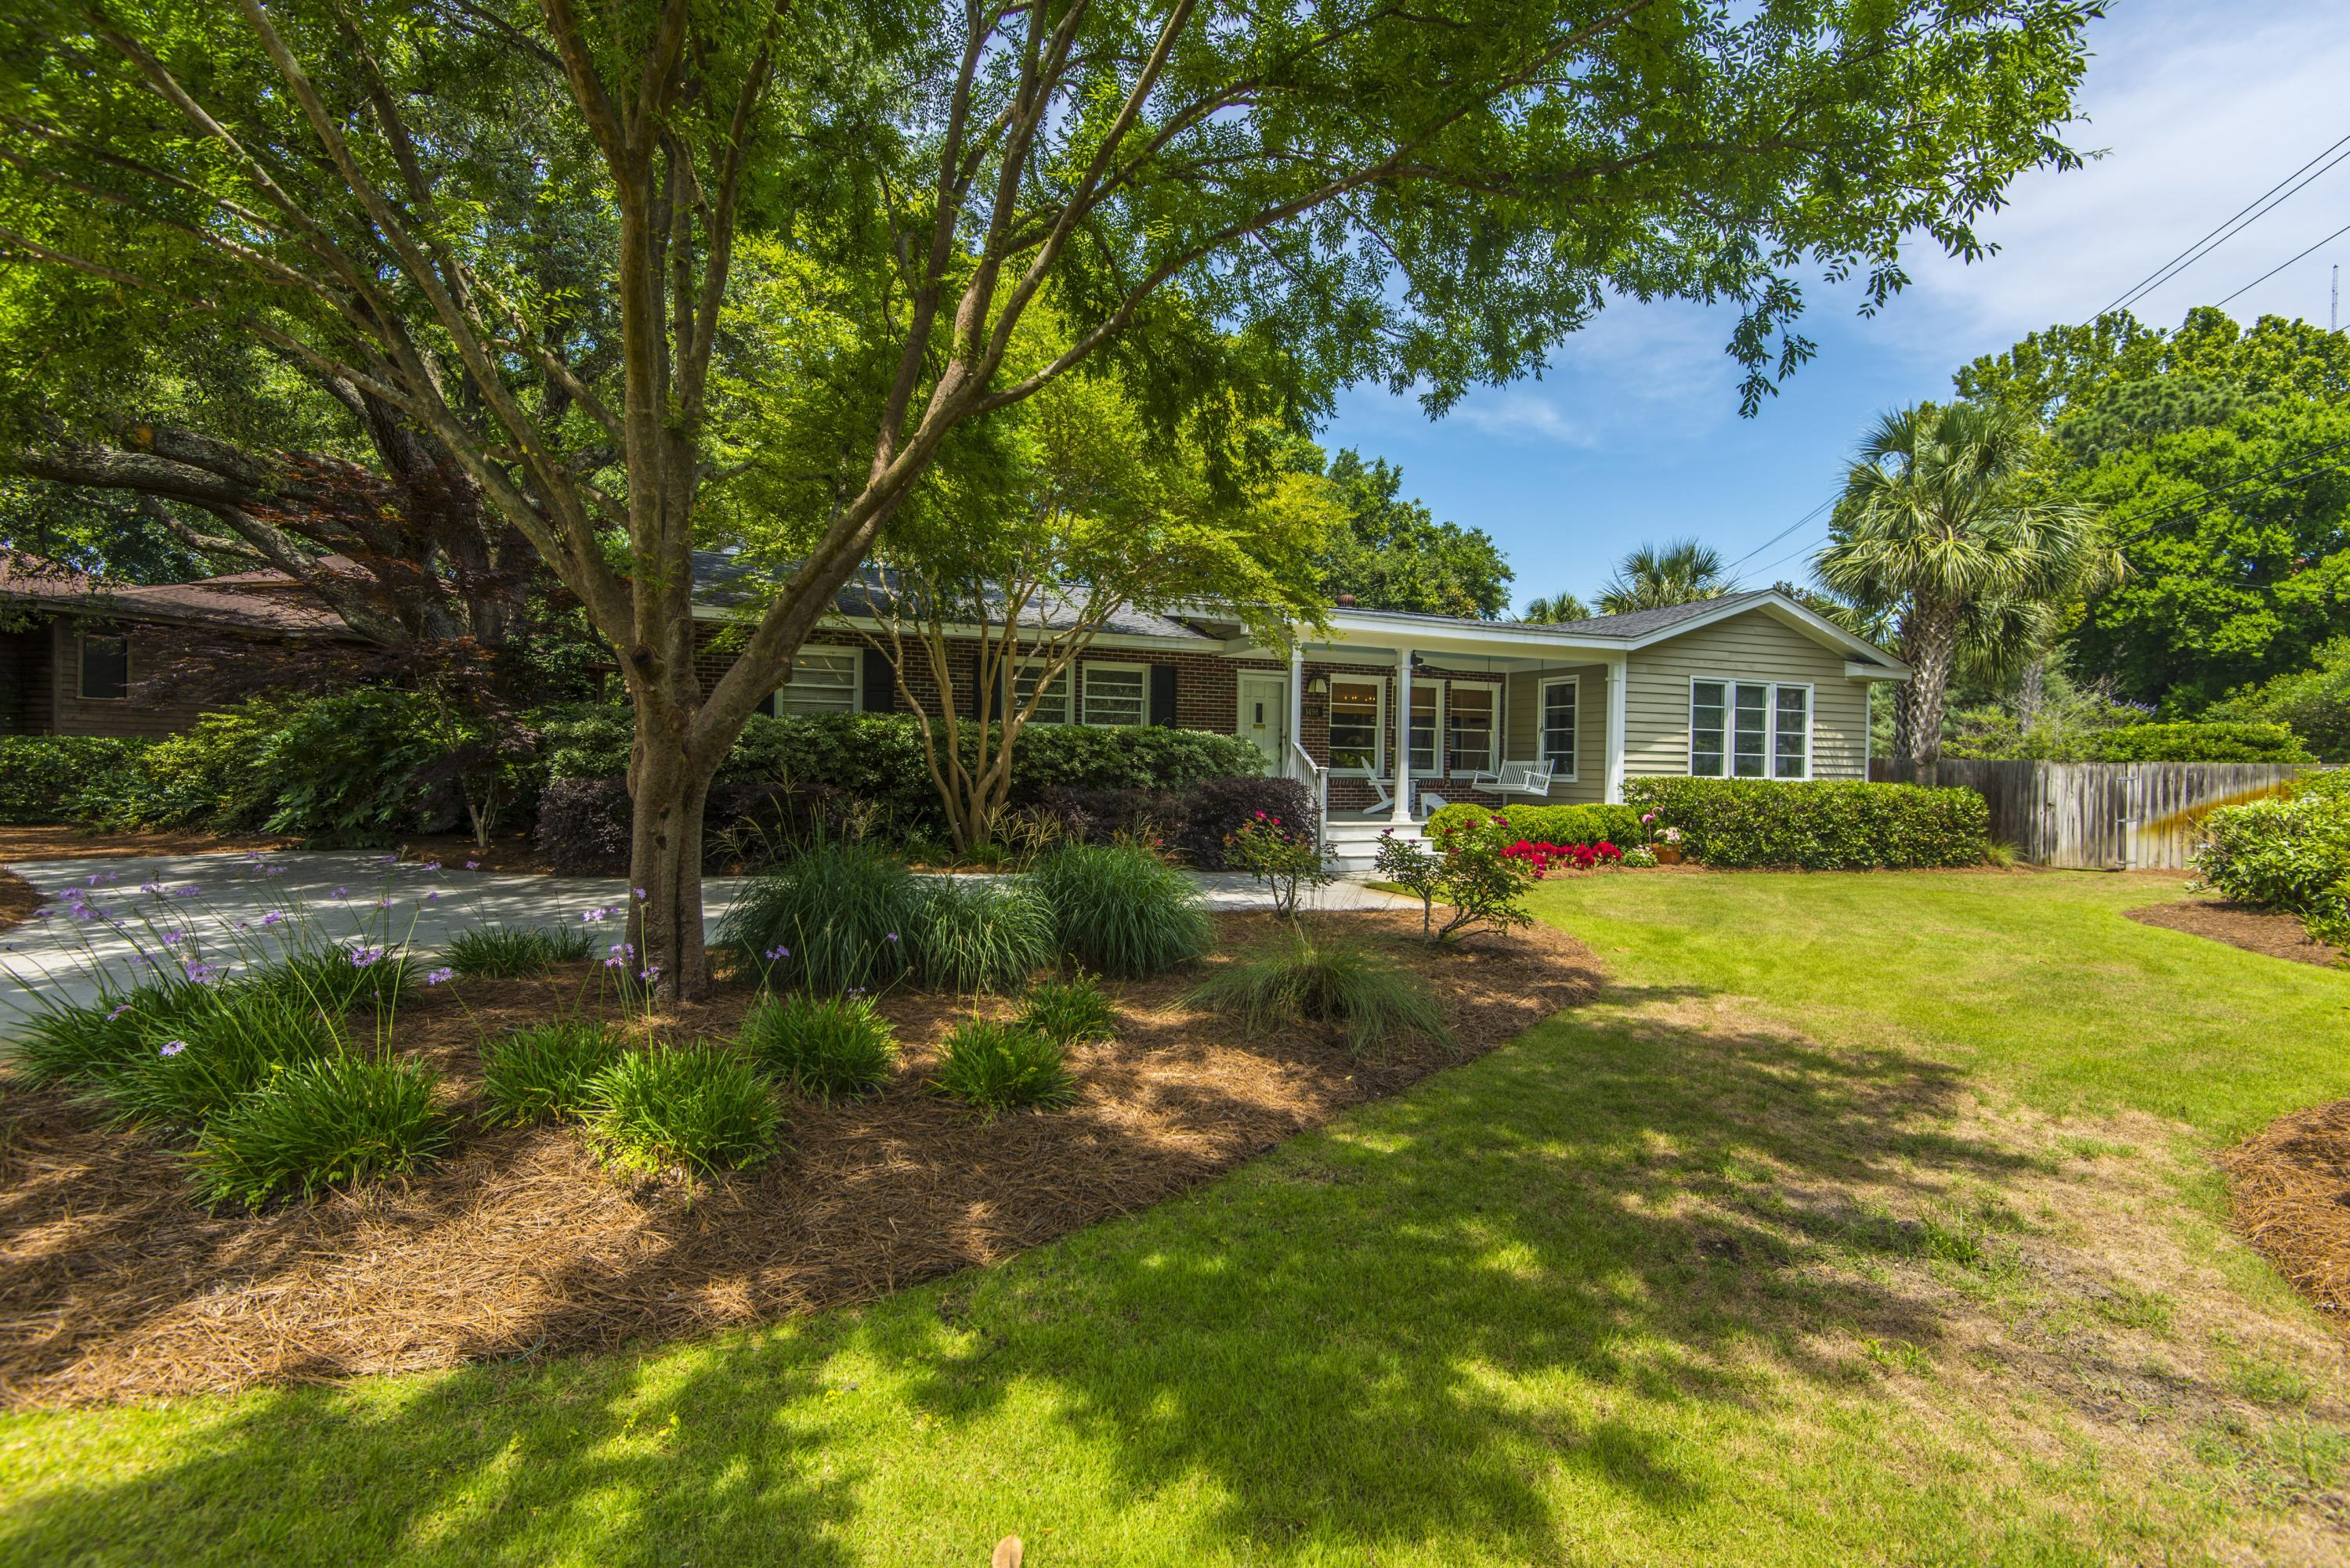 Old Mt Pleasant Homes For Sale - 1498 Pocahontas, Mount Pleasant, SC - 11